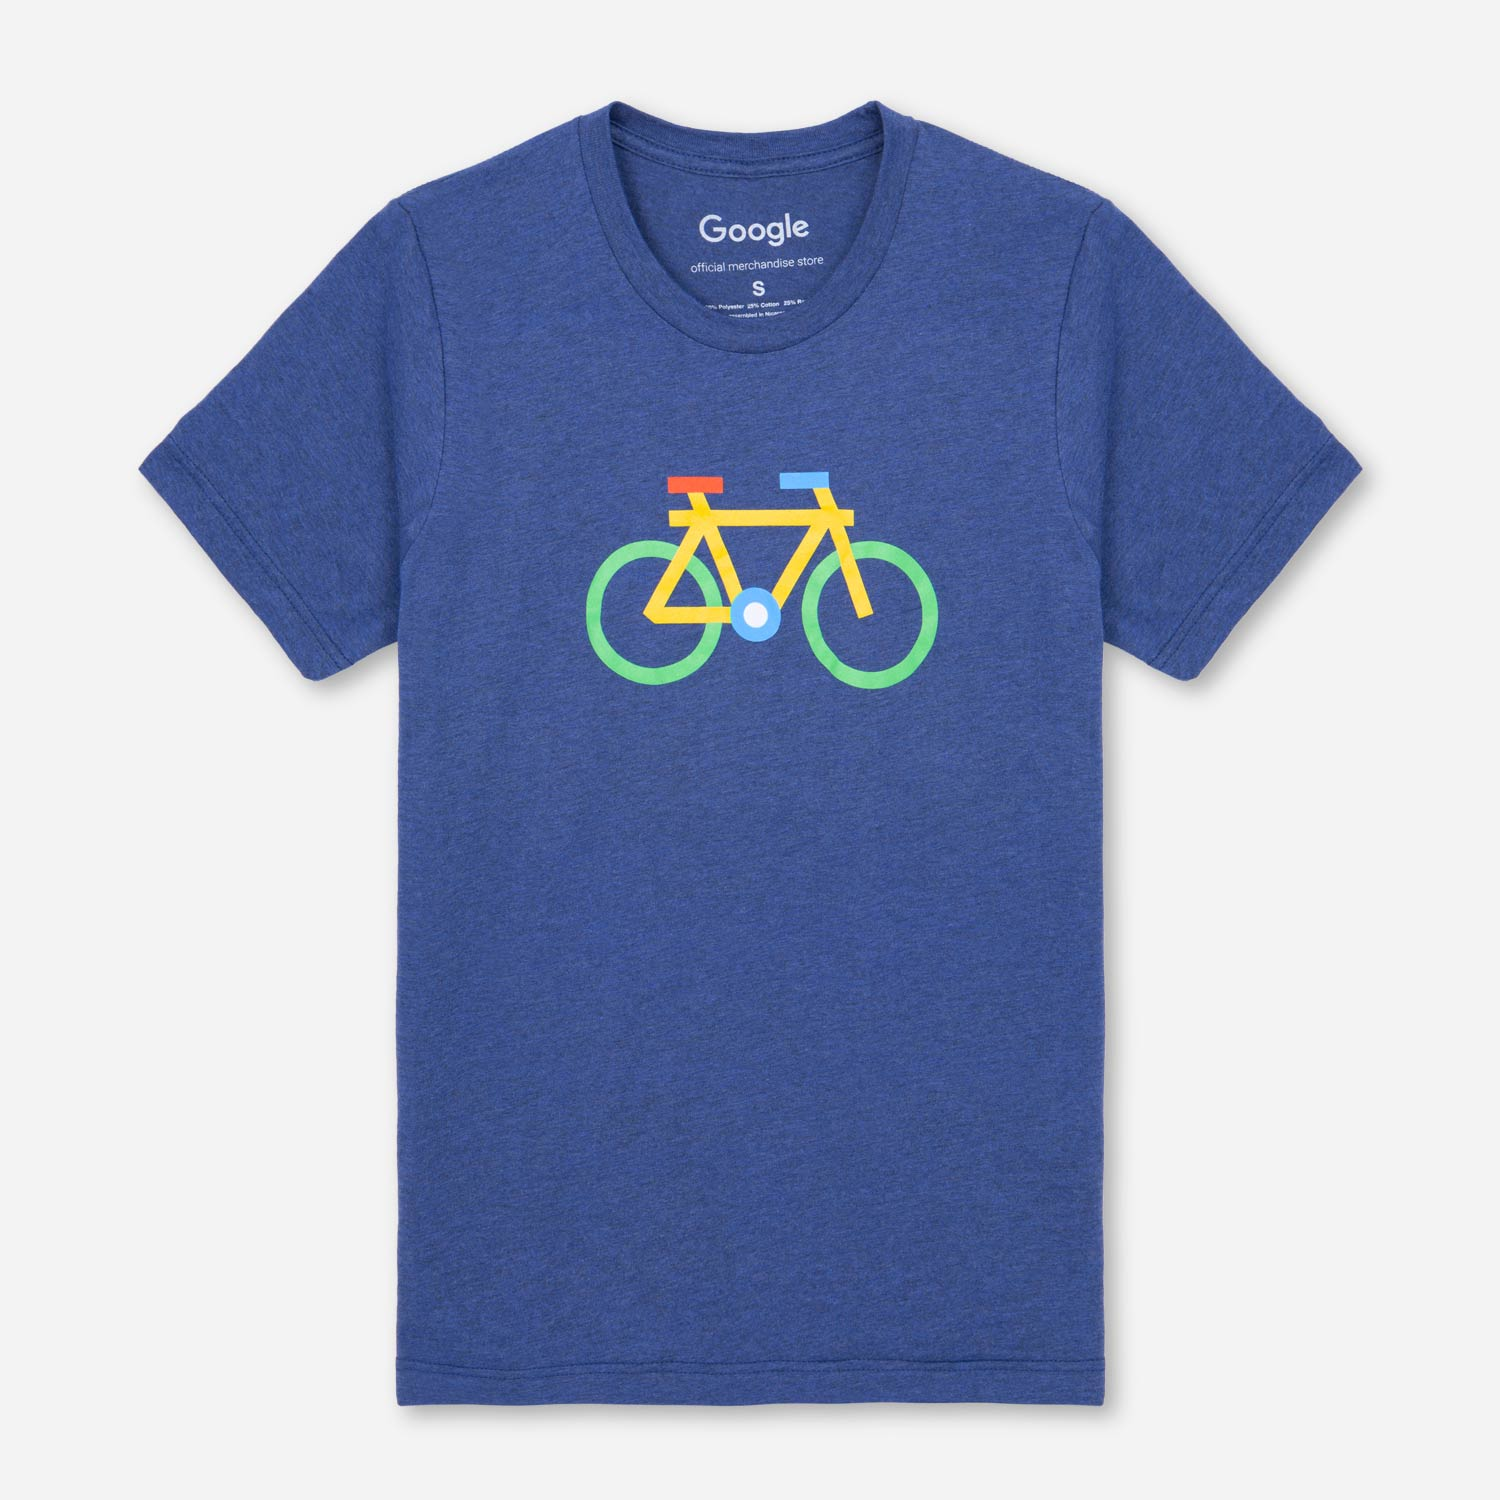 google bike tee navy  tshirts c 28 #15